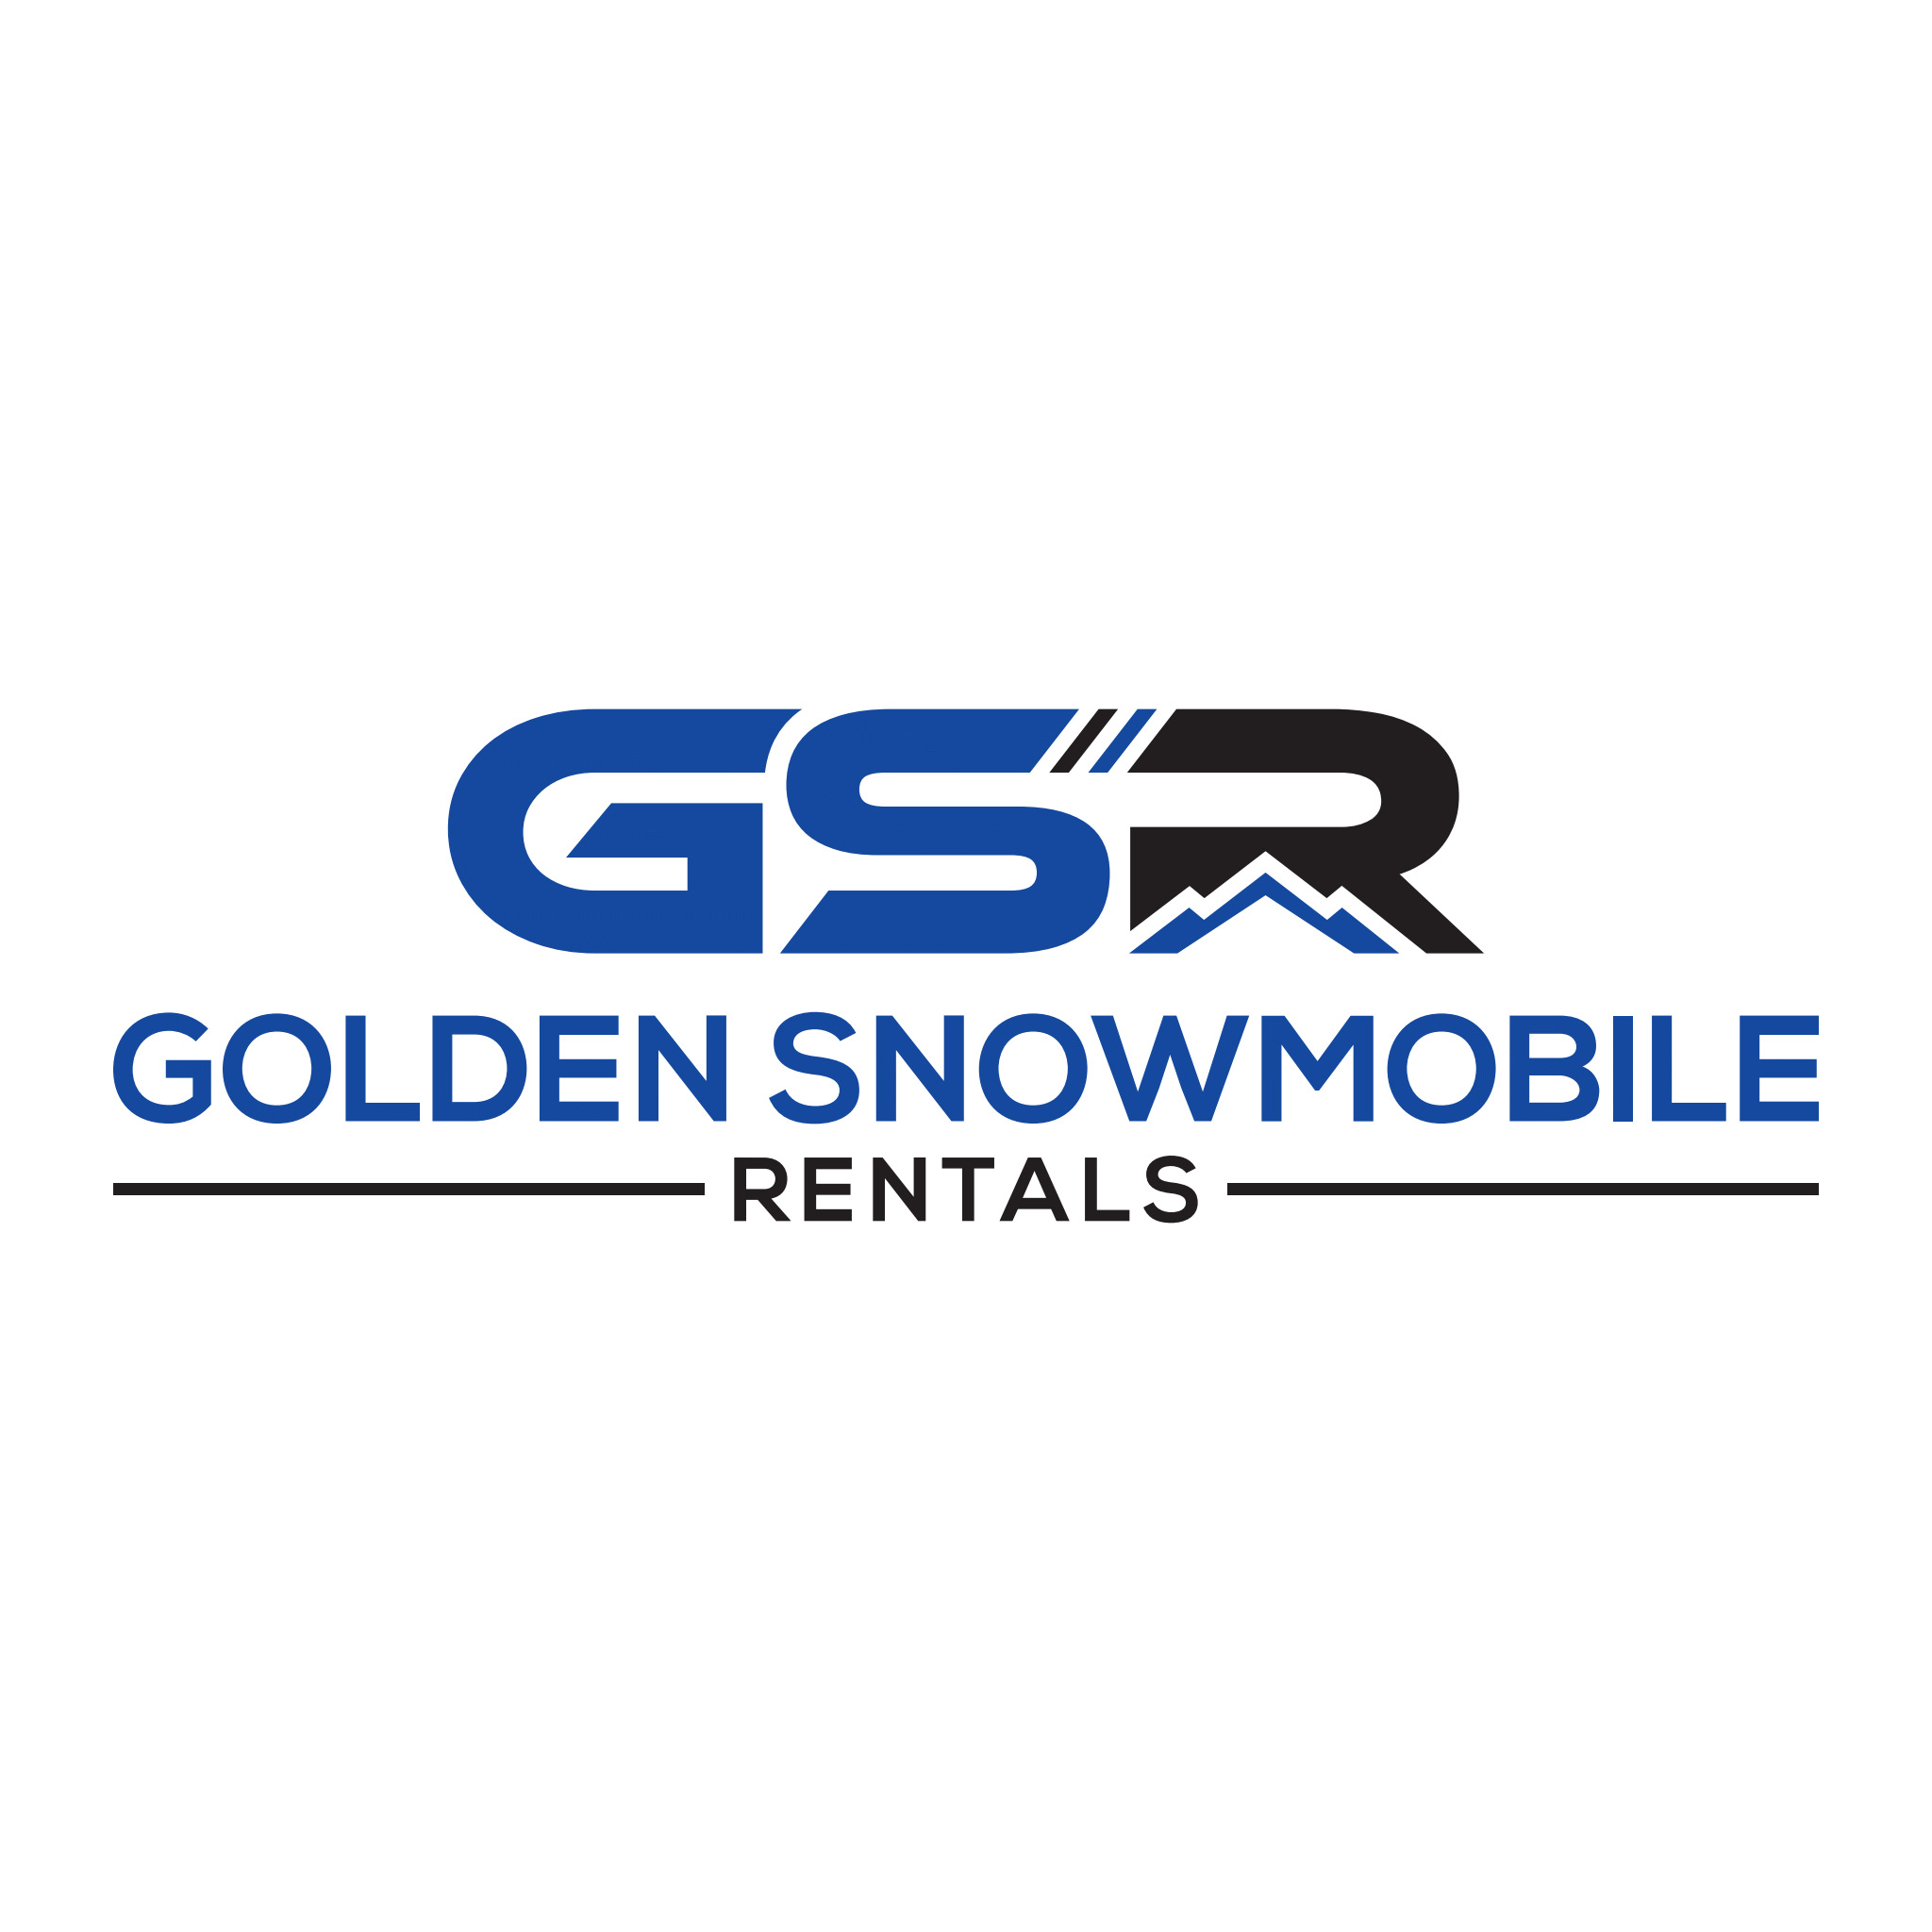 Golden Snowmobile Rentals